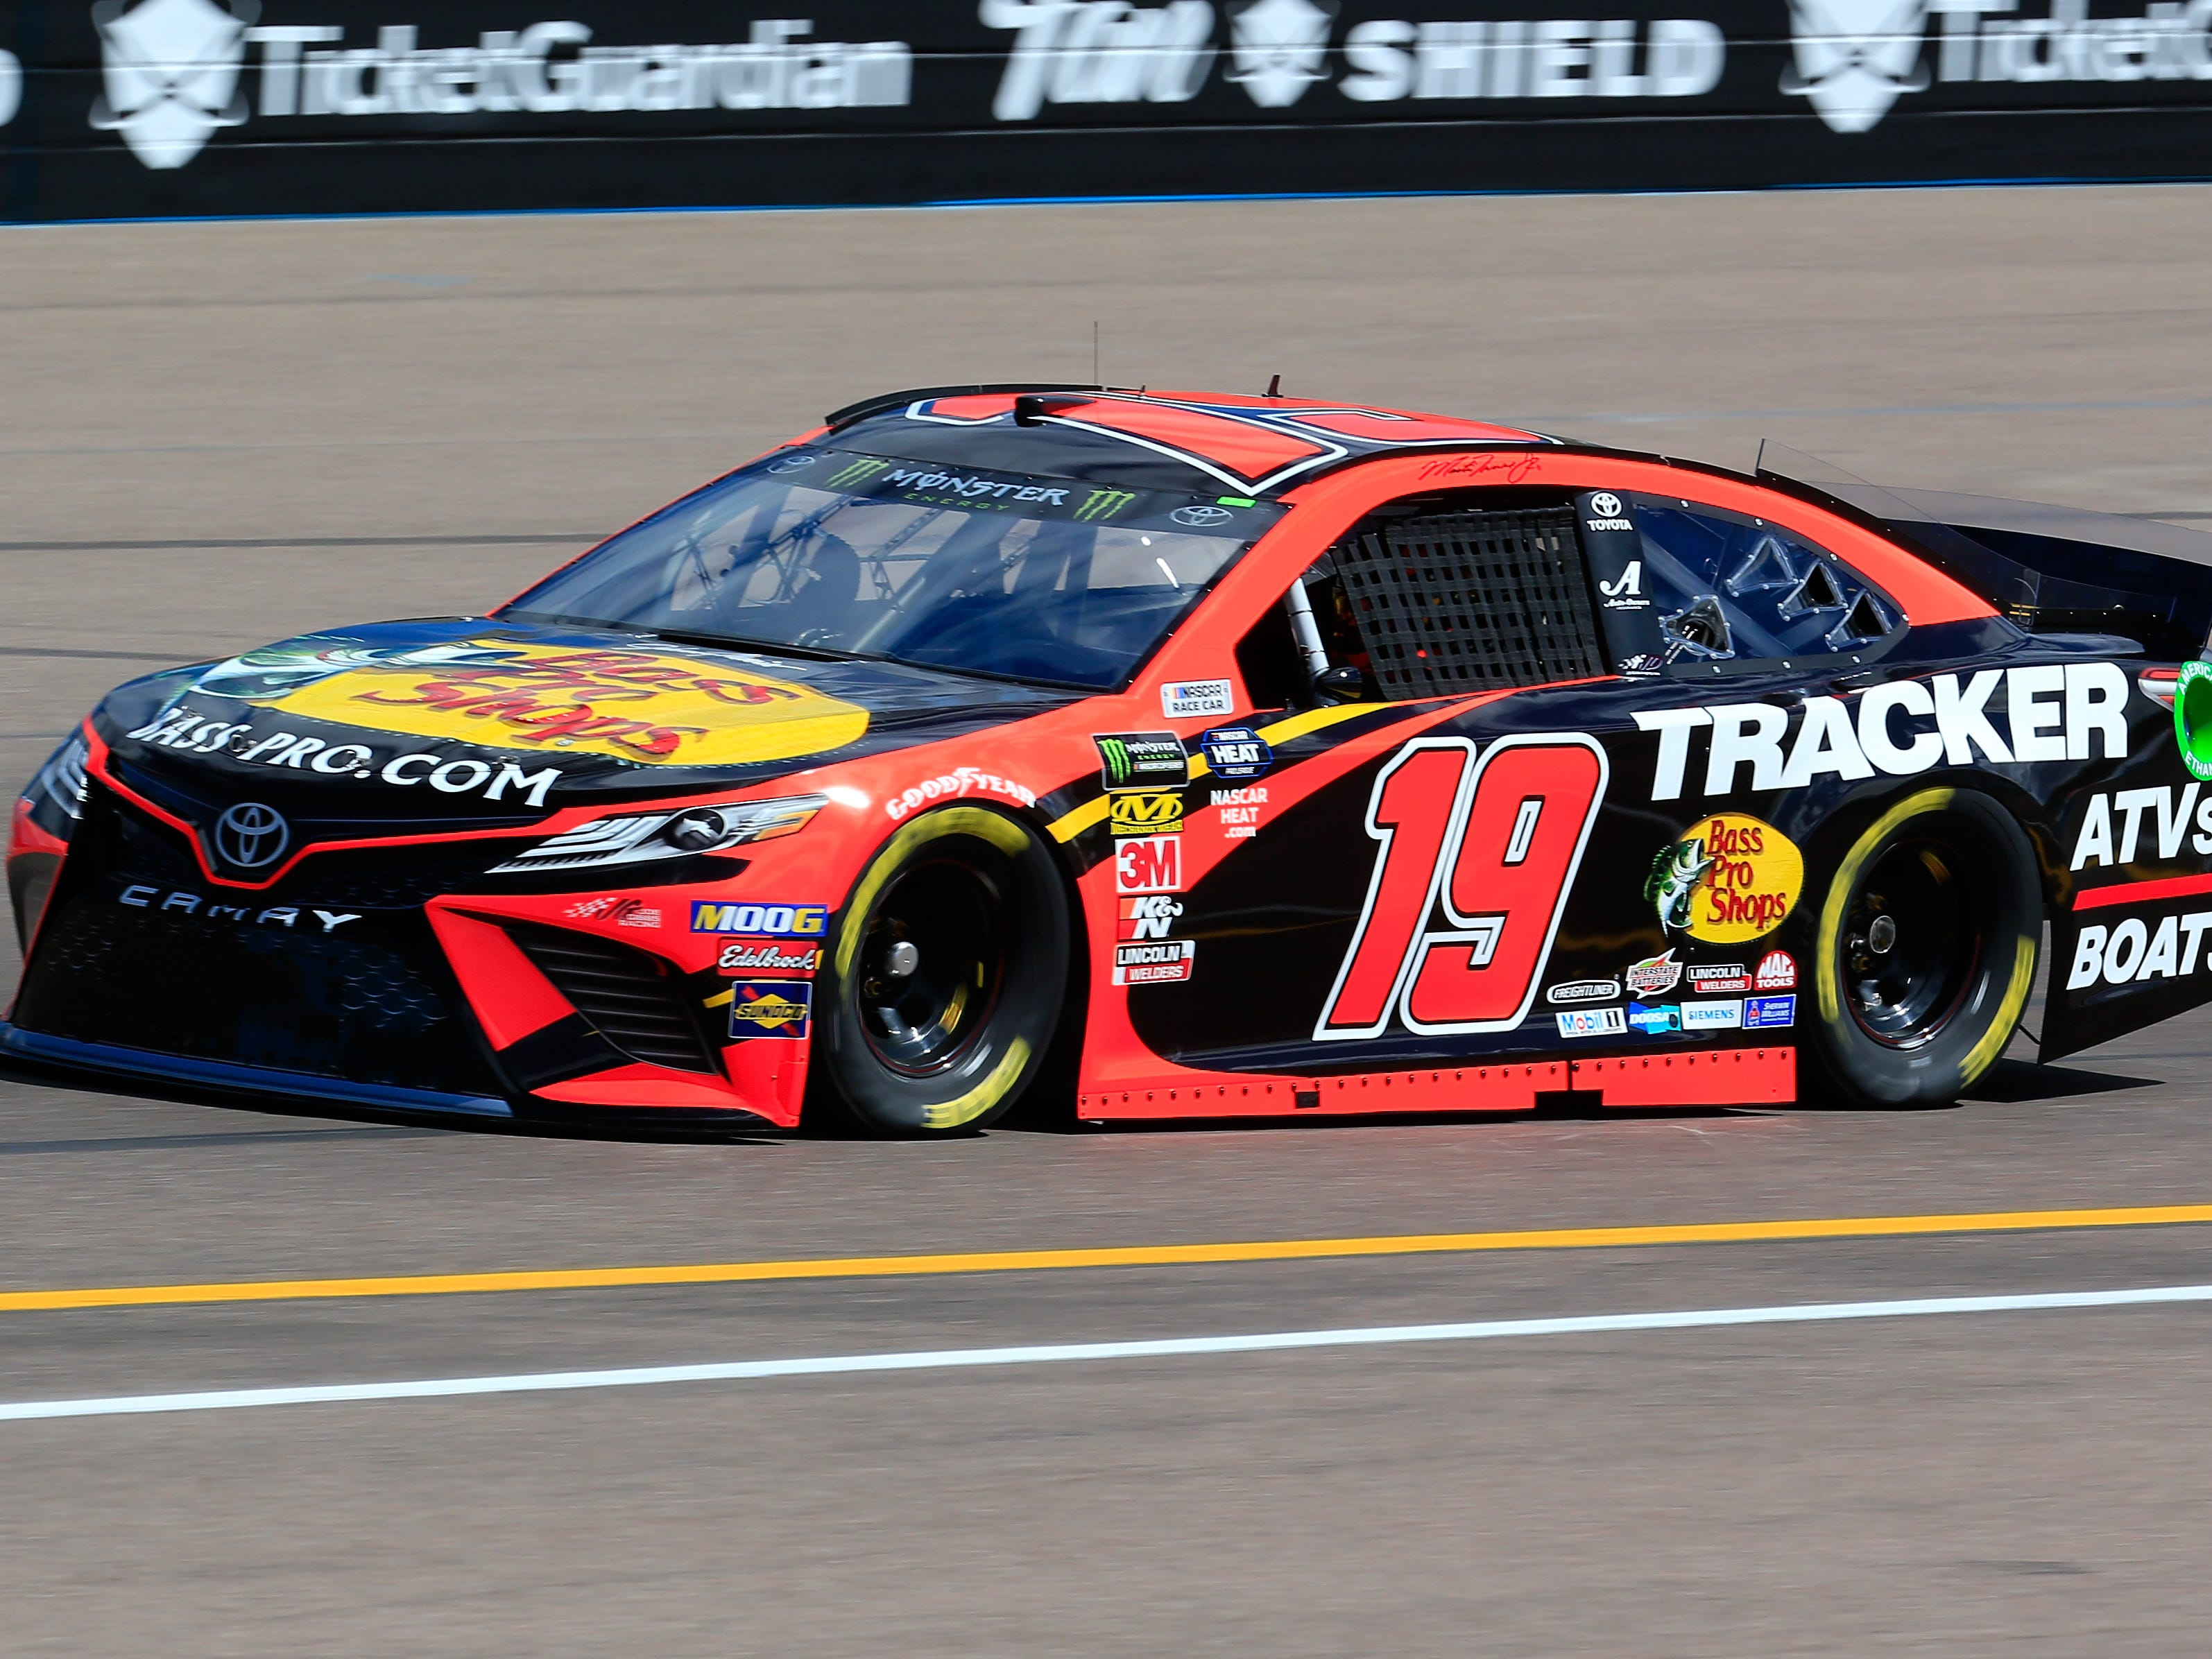 AVONDALE, AZ - MARCH 08: Martin Truex Jr., driver of the #19 Bass Pro Shops Toyota, practices for the Monster Energy NASCAR Cup Series TicketGuardian 500 at ISM Raceway on March 8, 2019 in Avondale, Arizona.